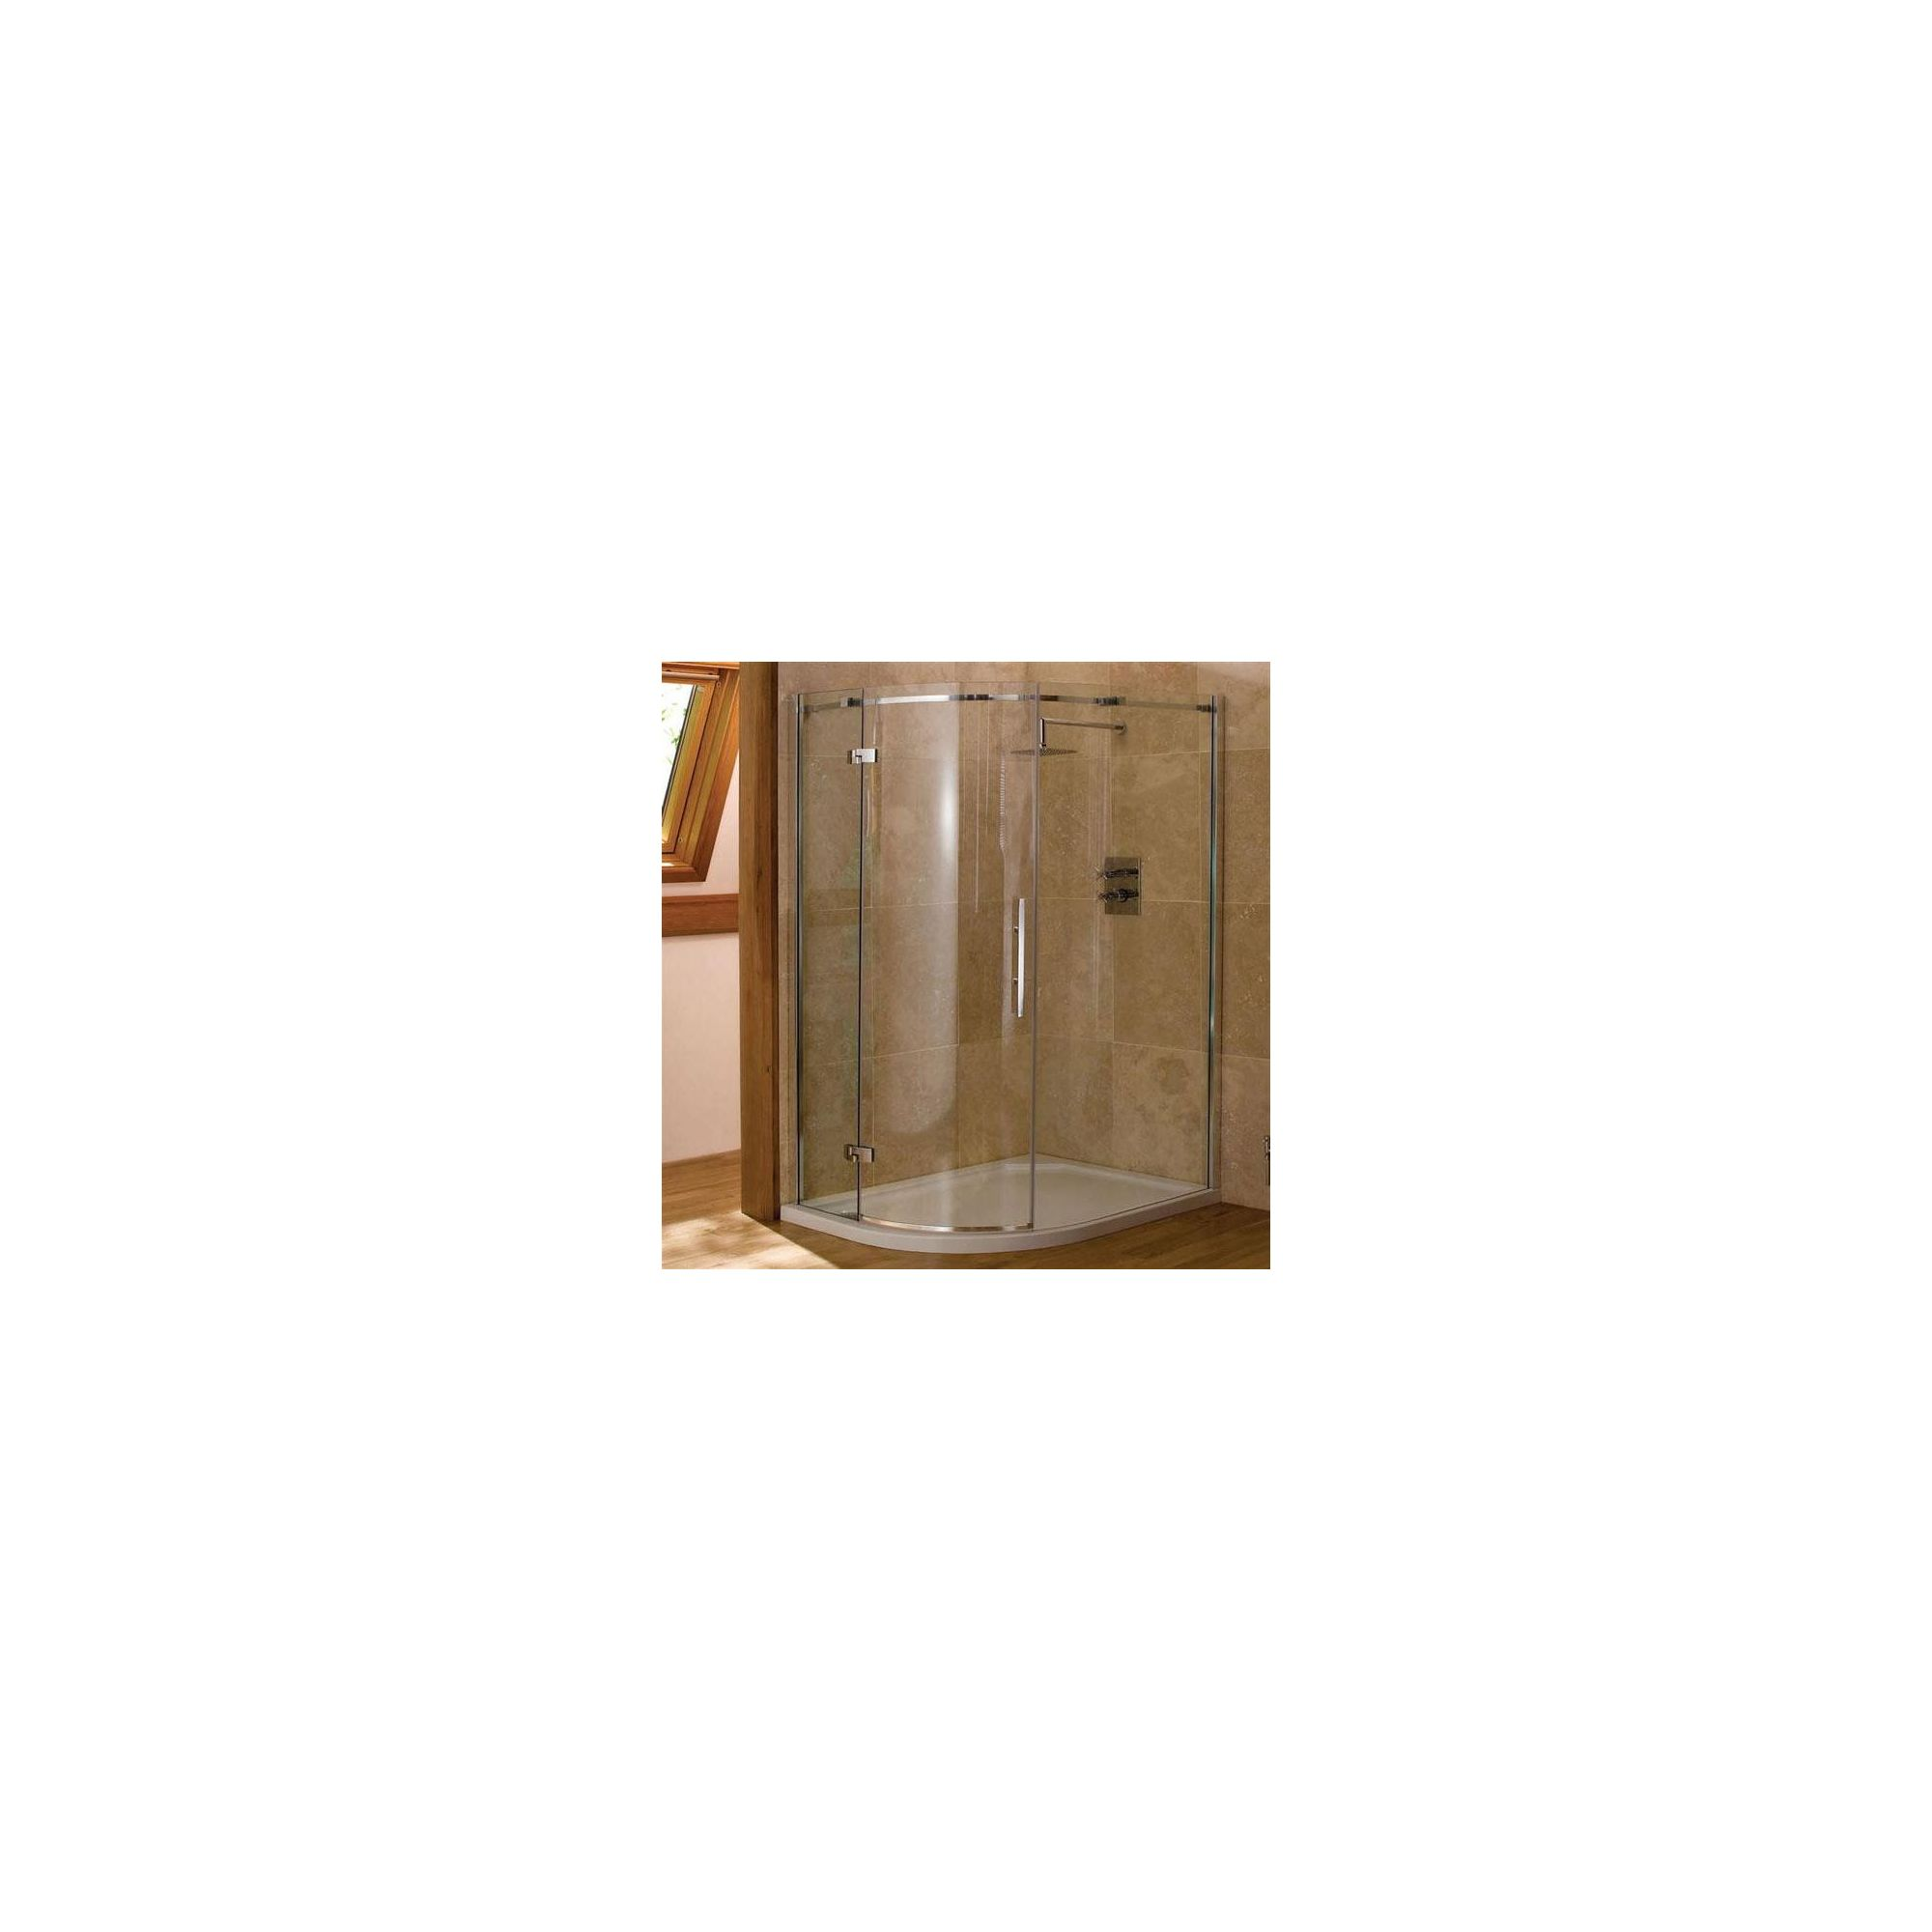 Merlyn Vivid Nine Offset Quadrant Shower Door, 1000mm x 800mm, Right Handed, 8mm Glass at Tescos Direct